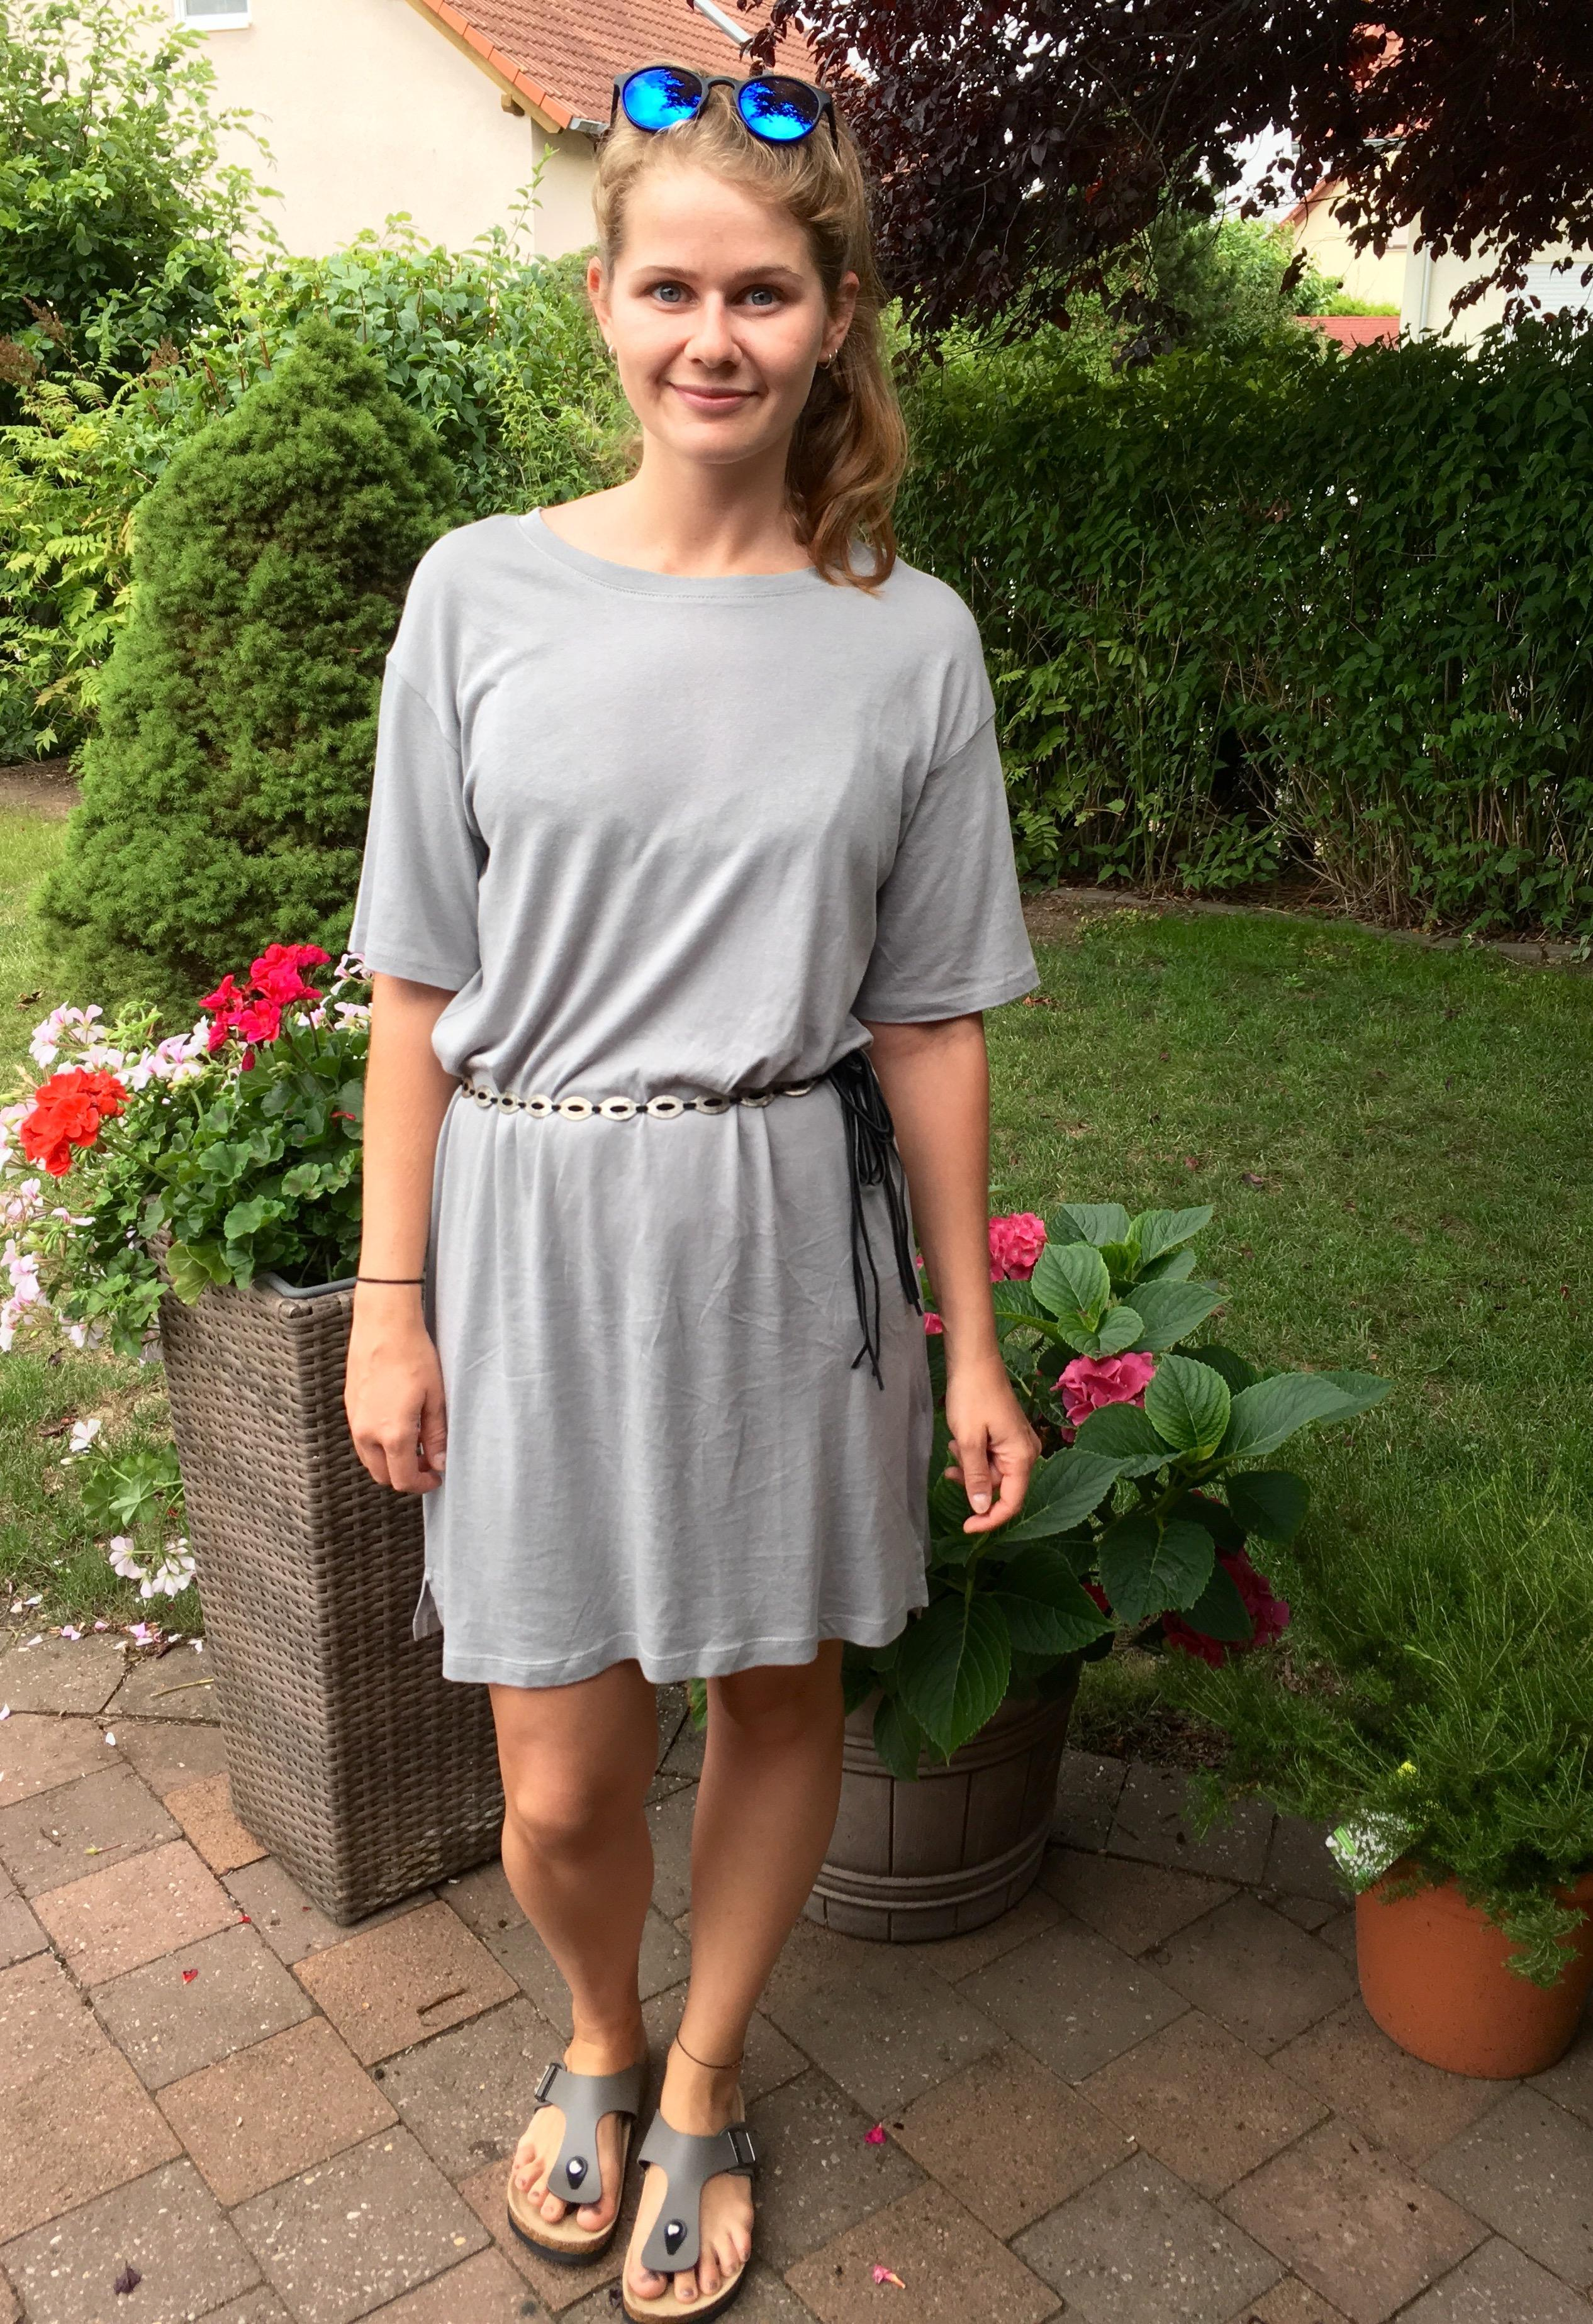 Graue maus  von wegen dress grey style look fashion  2f029d50 453a 4a04 a1f2 97bb3e69b934